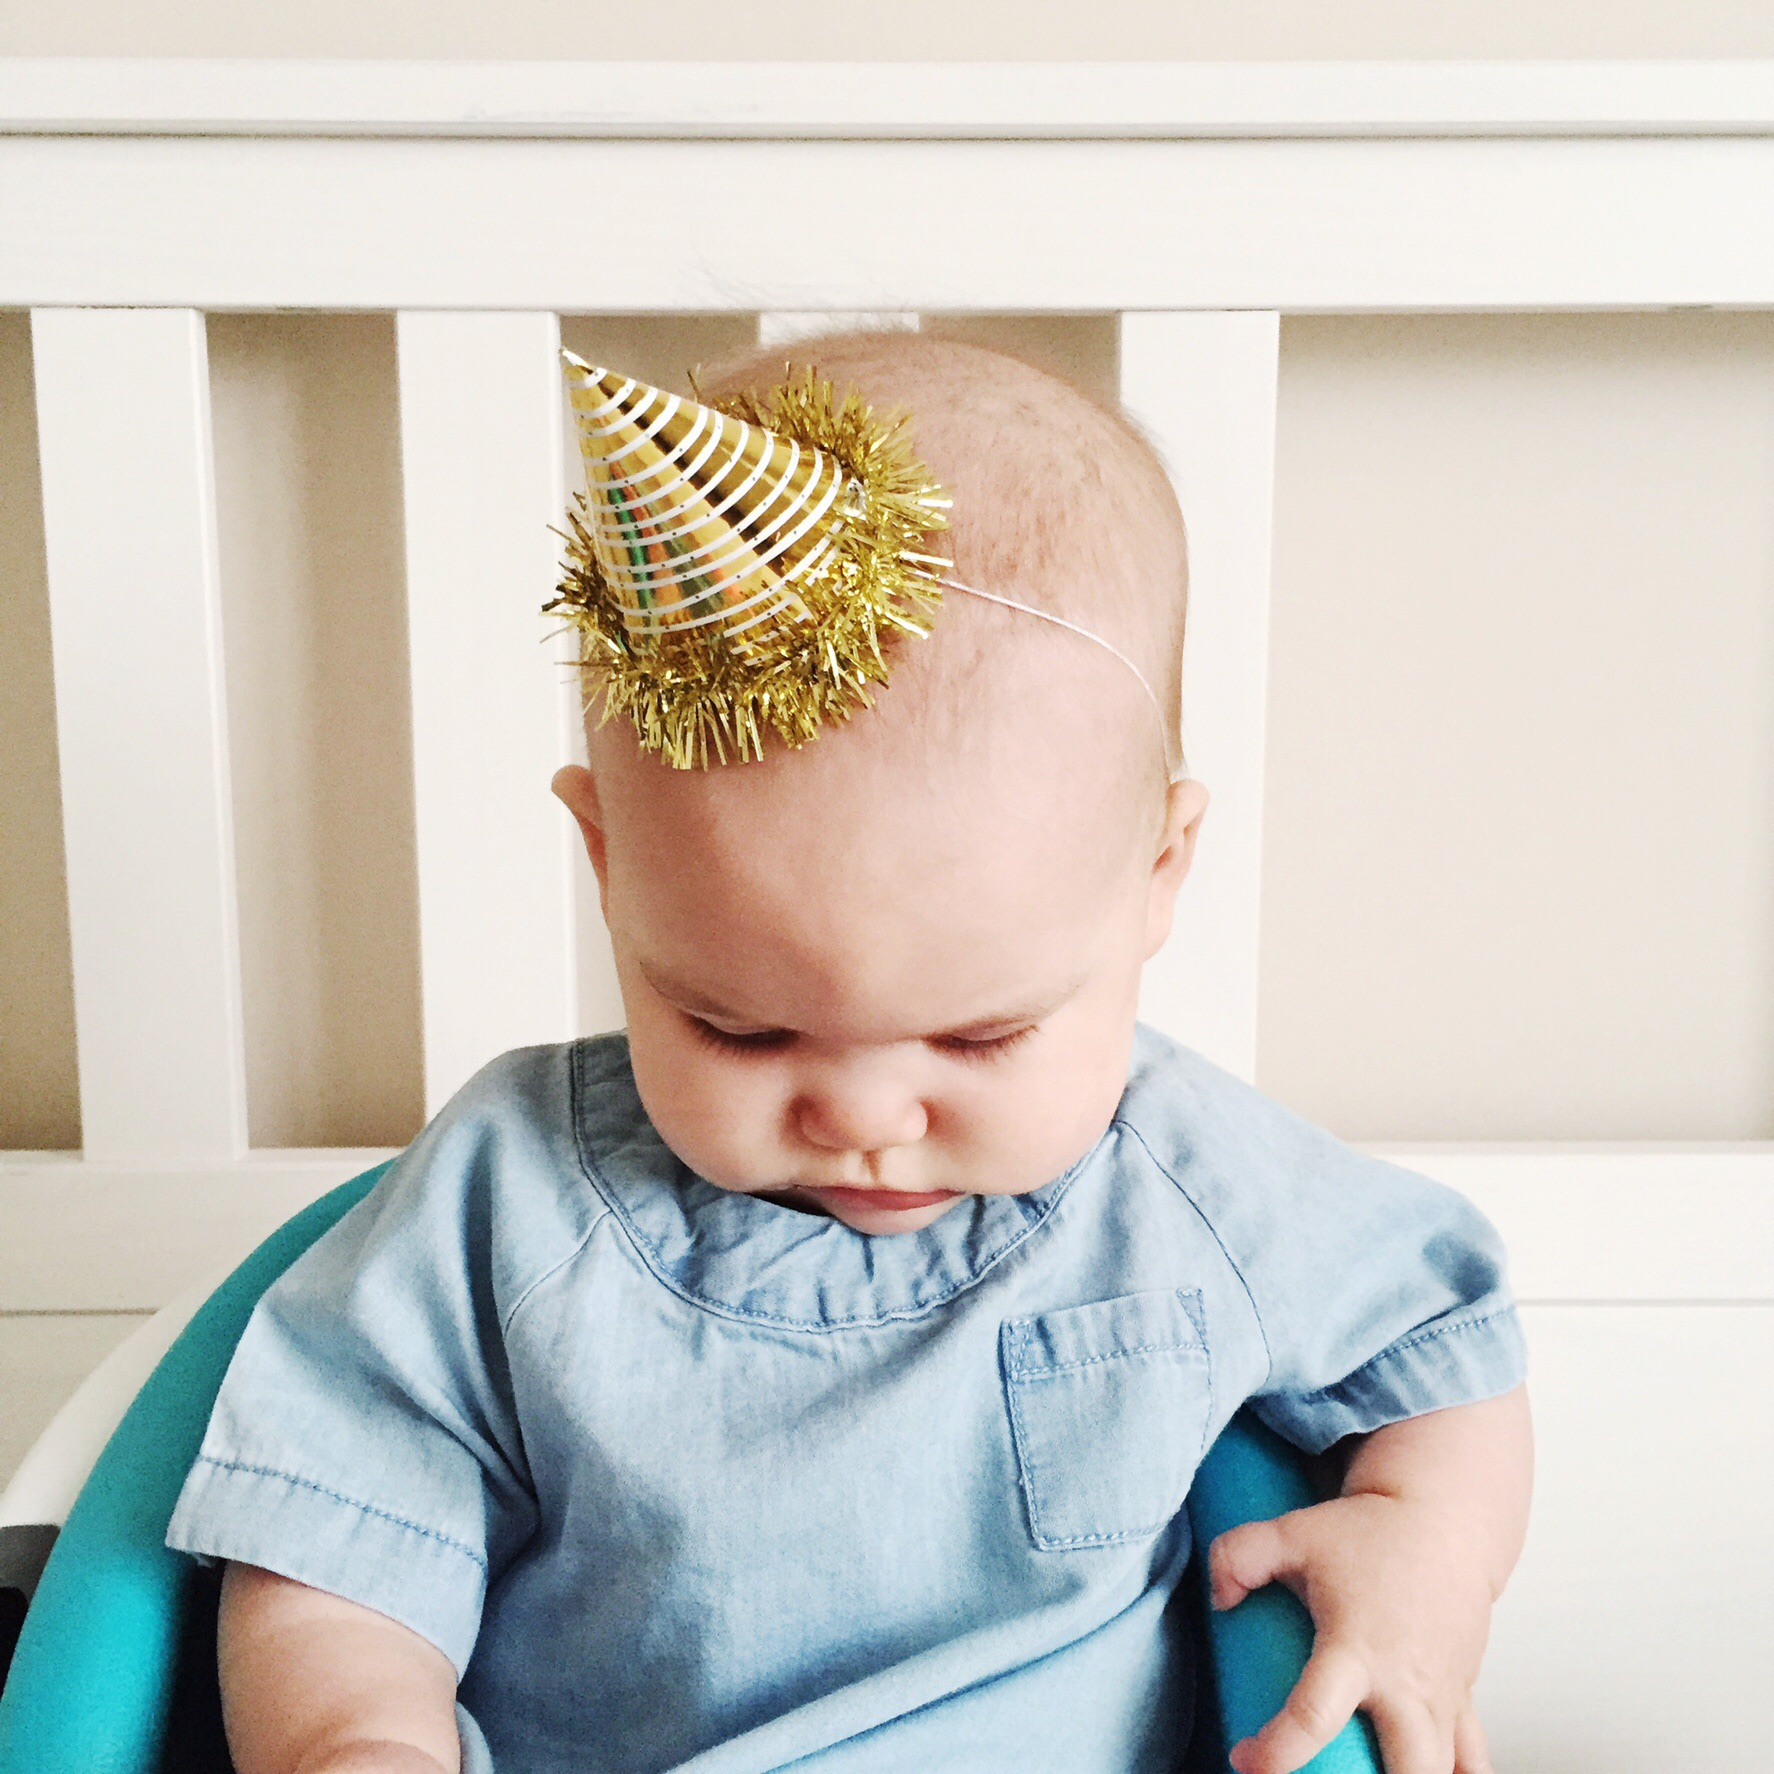 Ain't no party like a 6 months party | my only sunshine